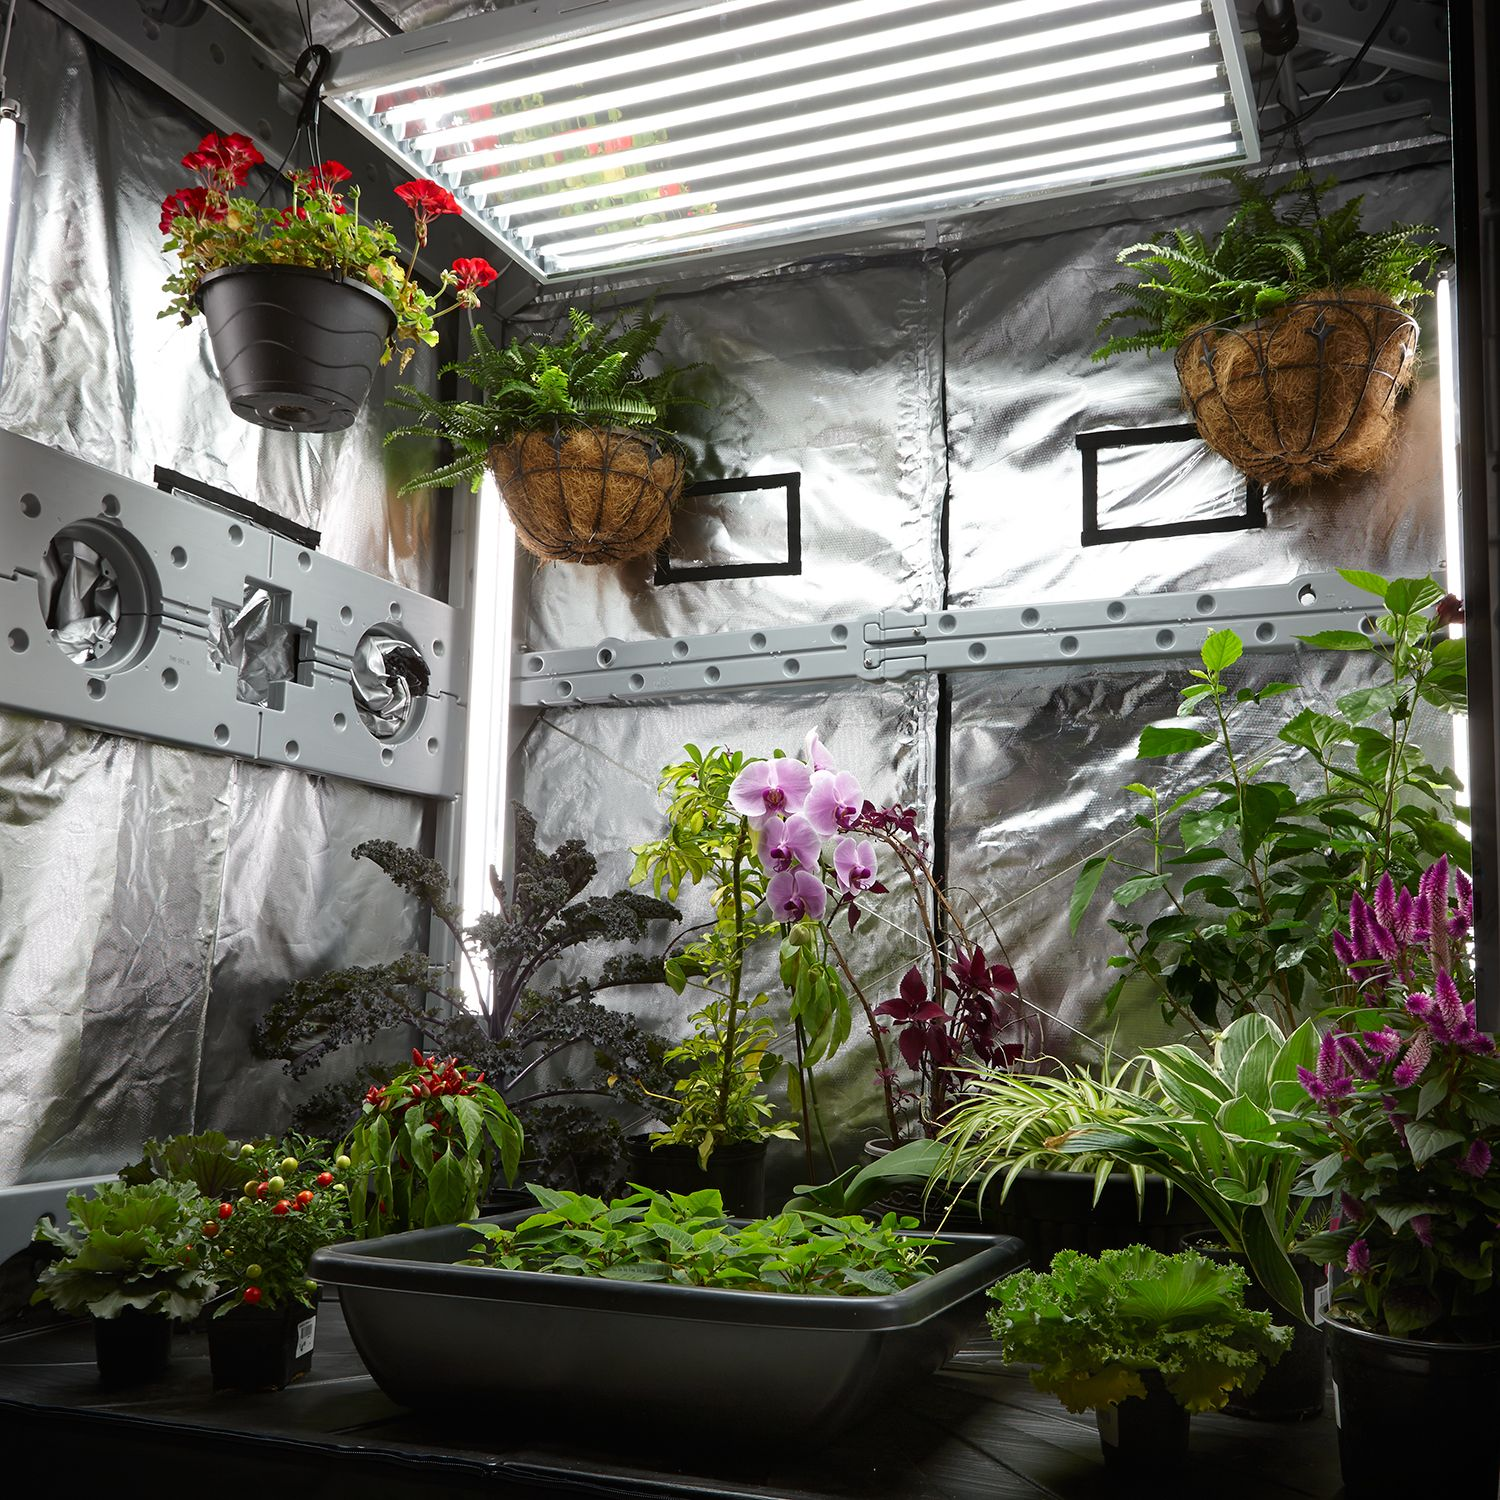 Best Vegetables To Grow In Raised Beds: Indoor Greenhouse Grow Light Tent Garden Kit Hydroponic